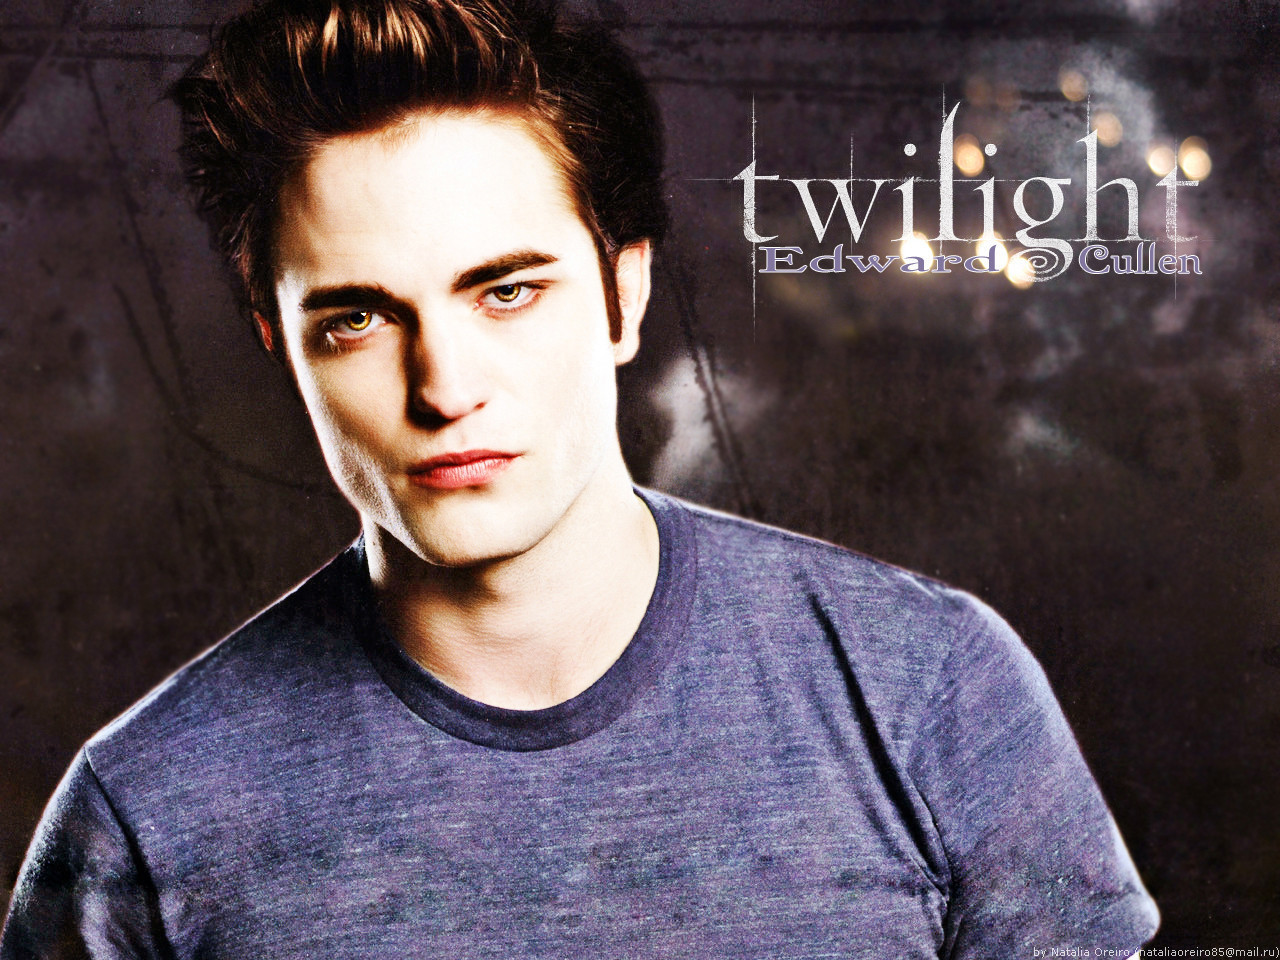 http://images2.fanpop.com/images/photos/4400000/Edward-Cullen-twilight-series-4451649-1280-960.jpg